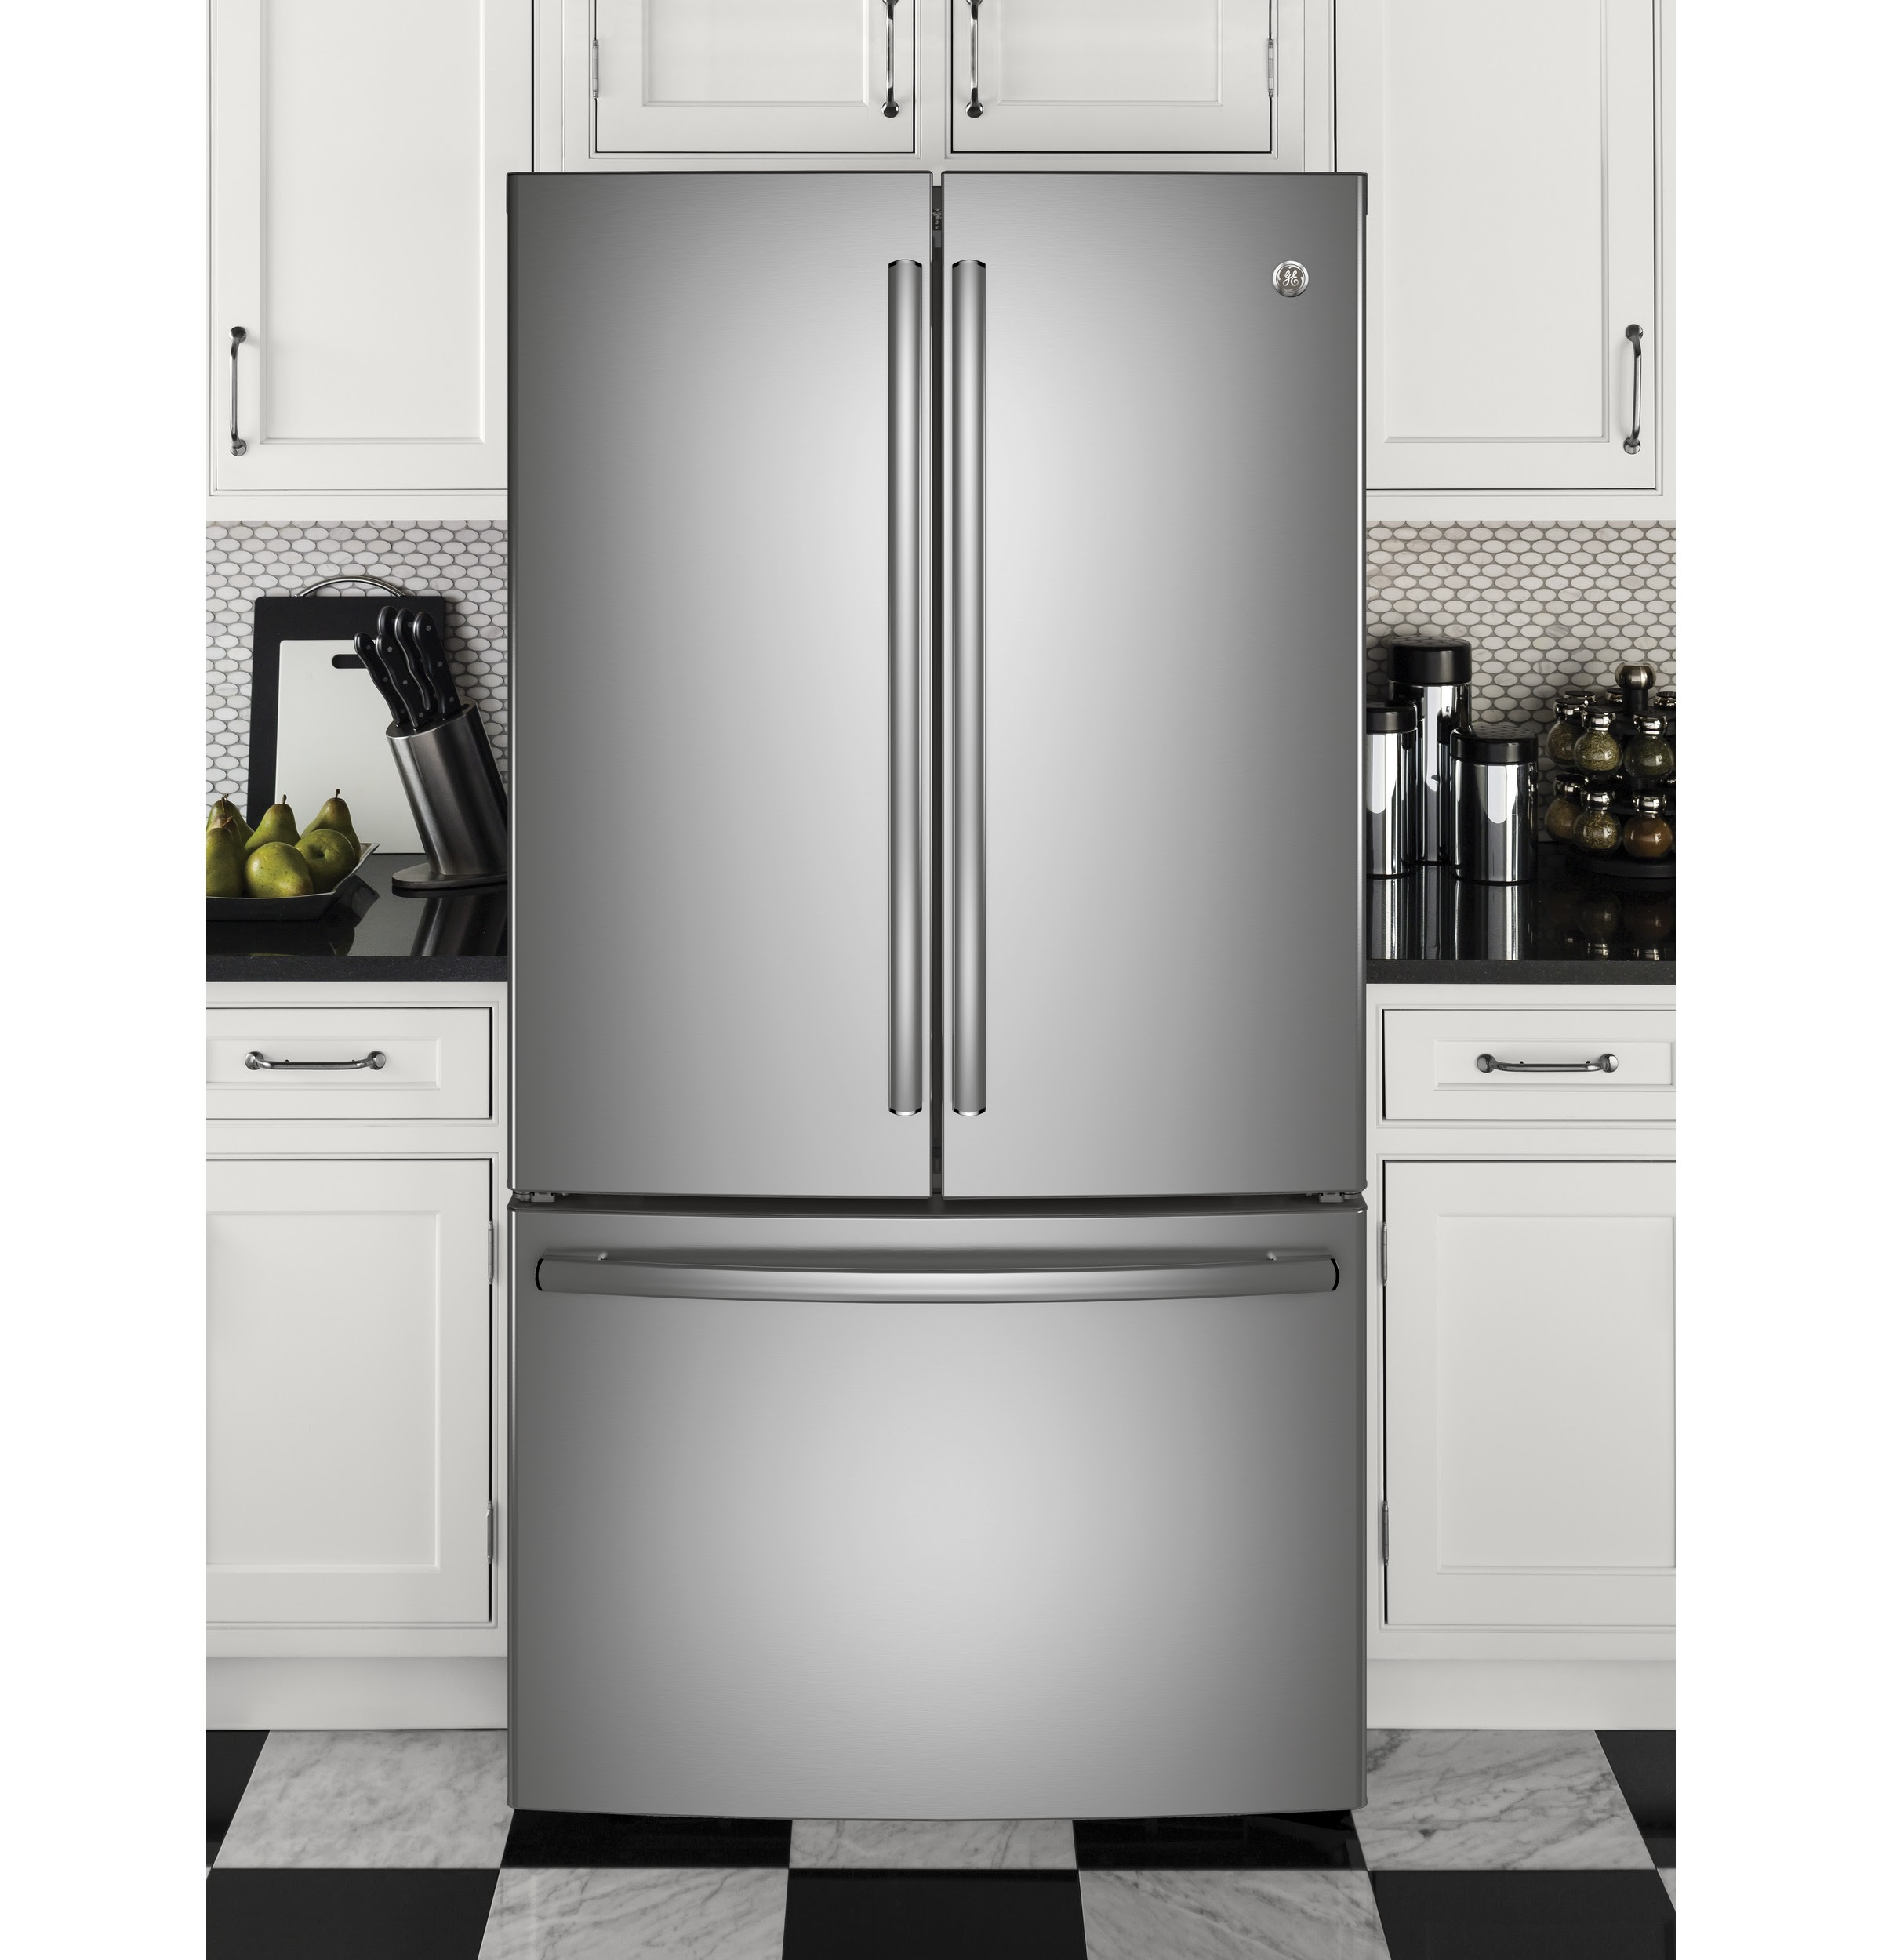 Beautiful Does Home Depot Haul Away Old Refrigerators